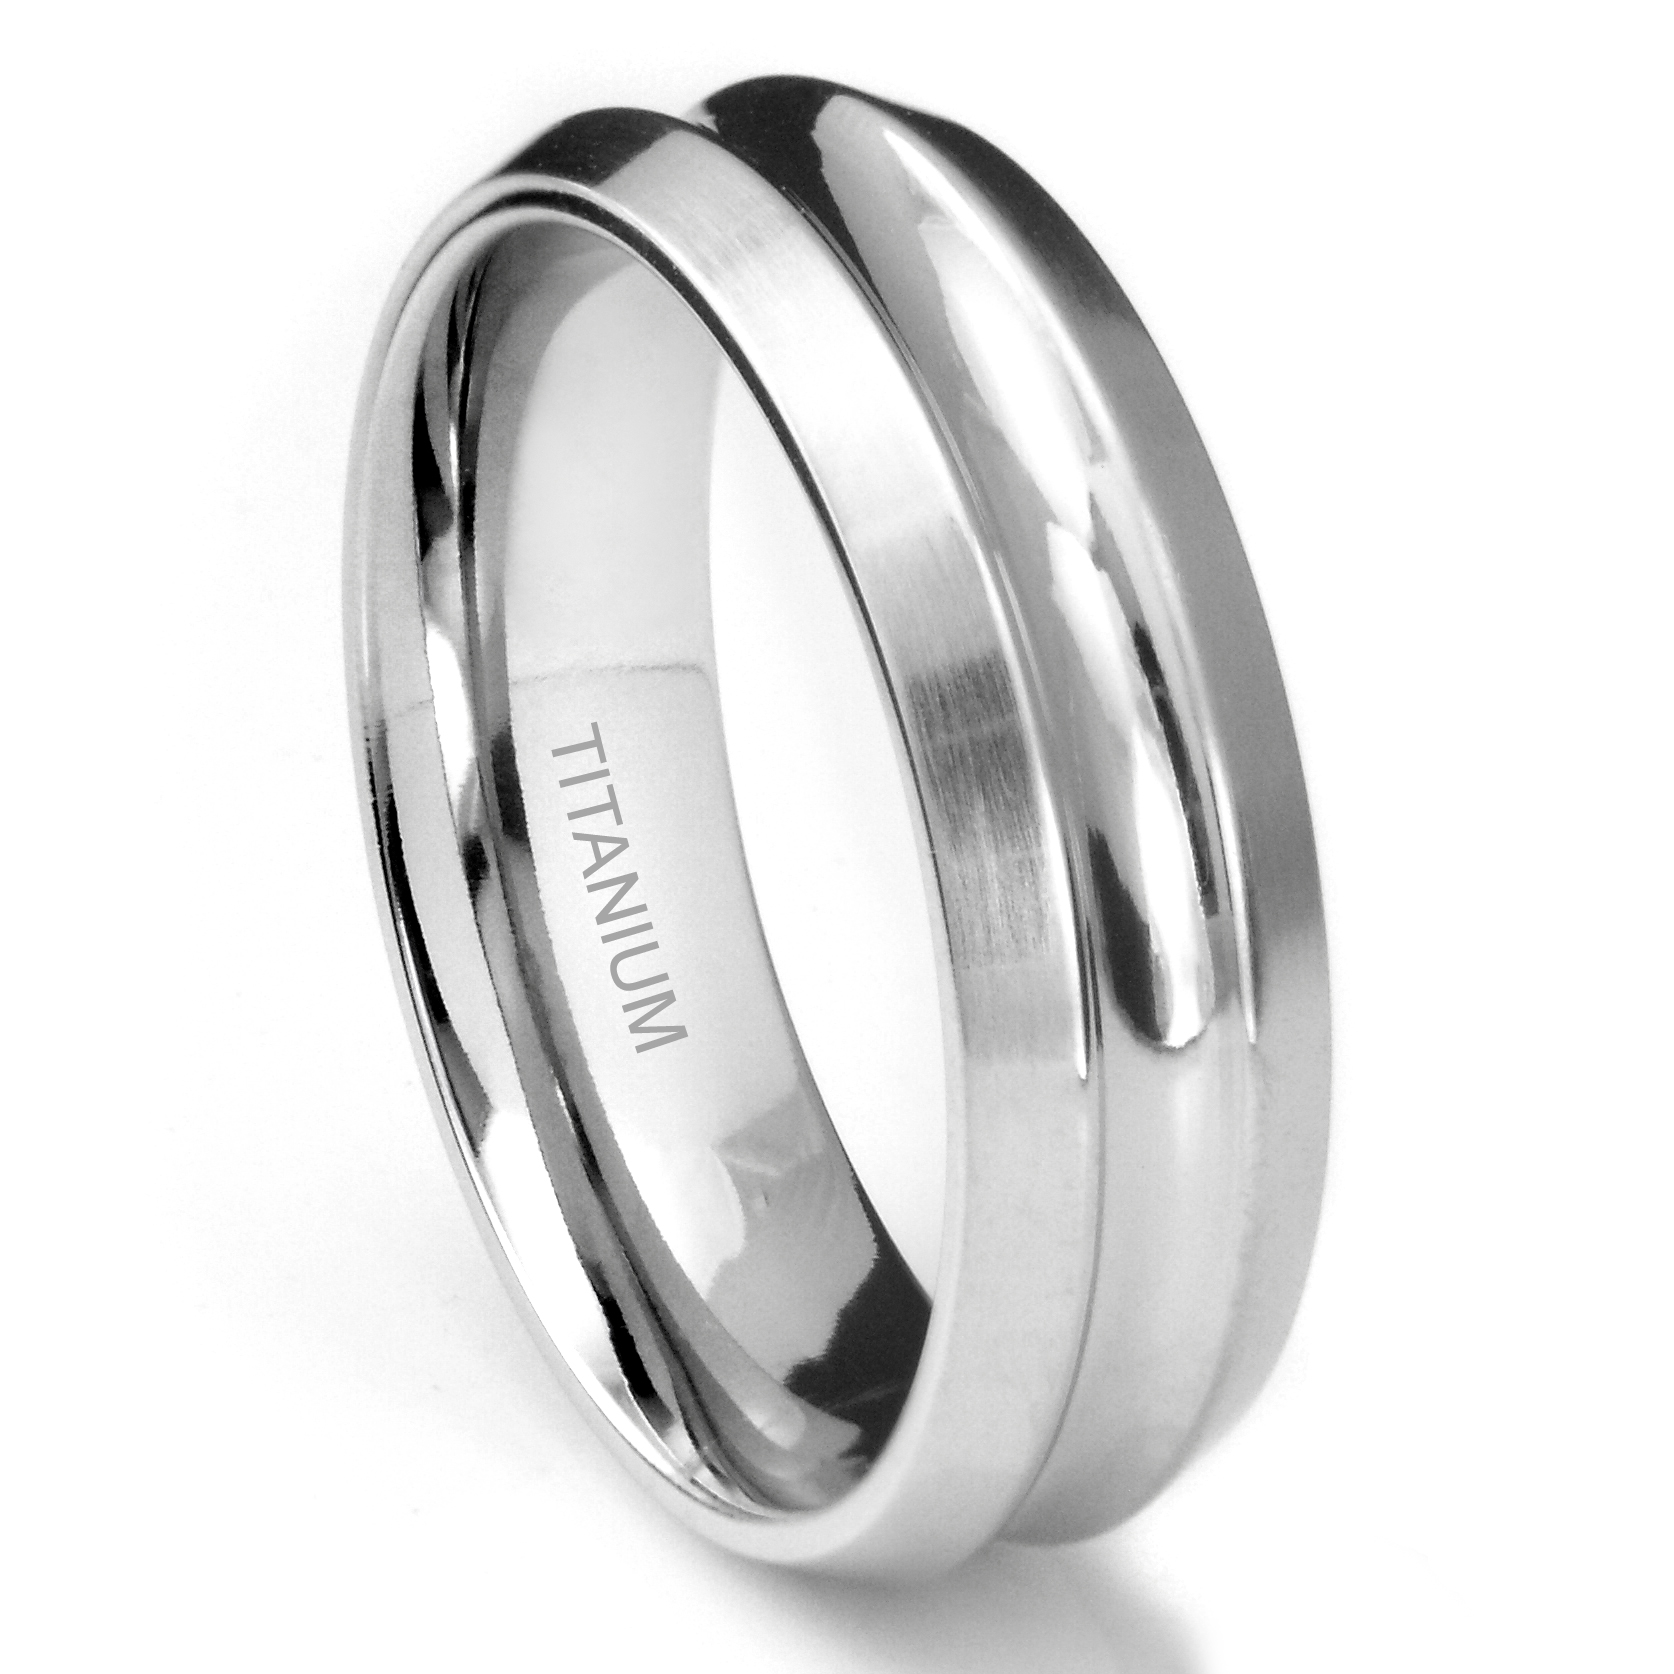 bands of men carbon products titanium mens wedding with edges out polished inlay beveled or band made tungsten ring black all rings fiber